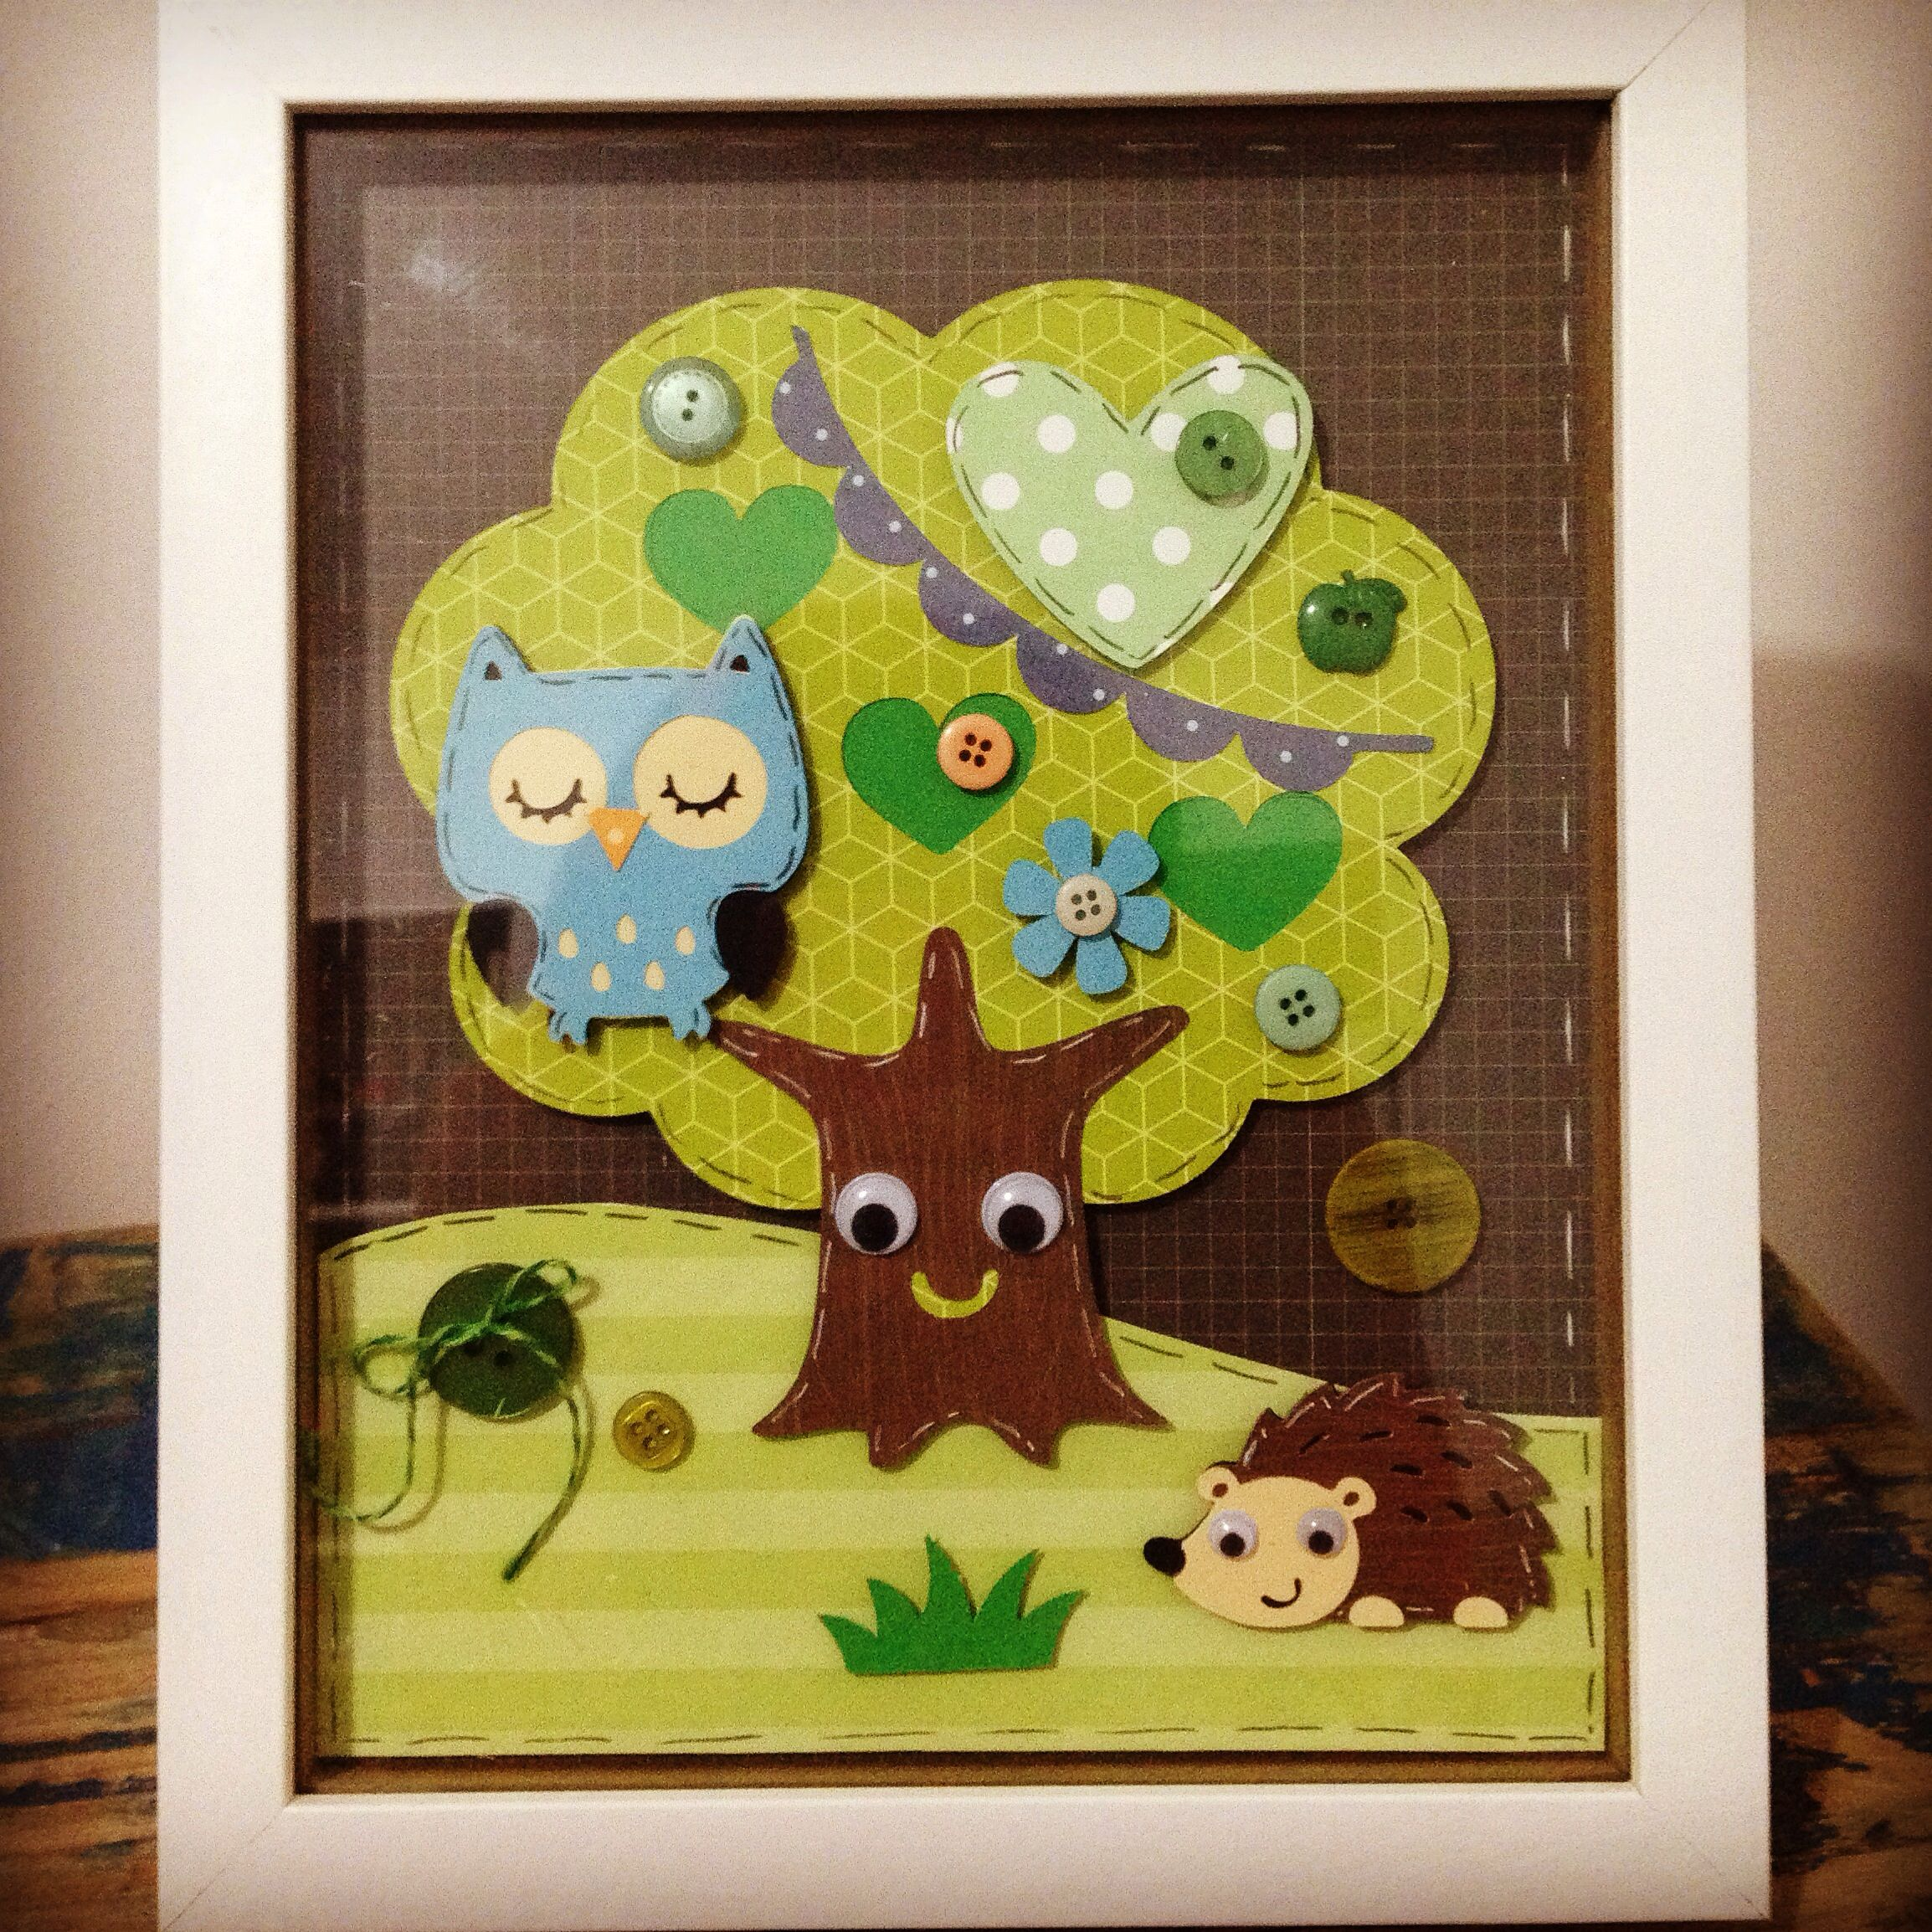 Woodland animals wall art cricut create a critter shadowbox frame ...